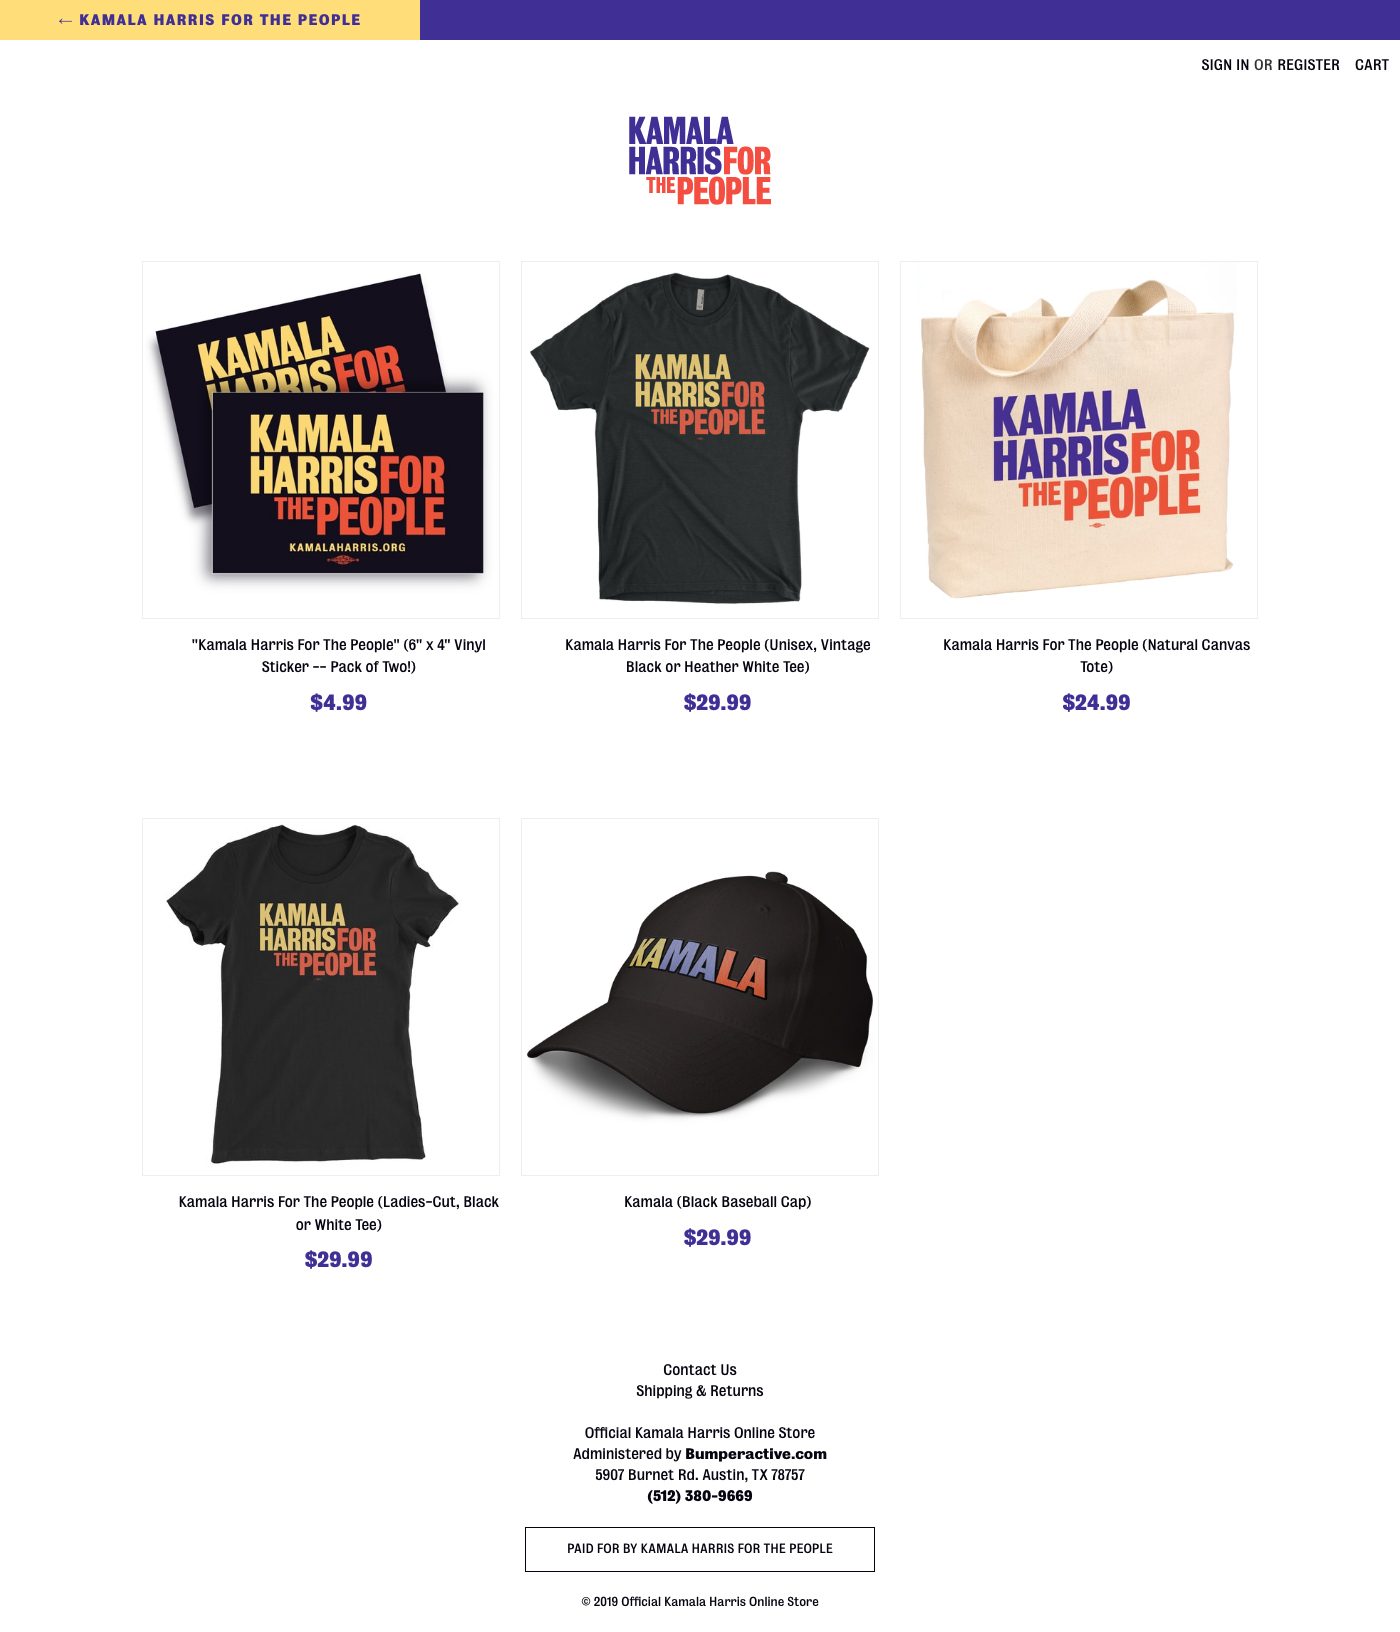 Kamala Harris: For The People - Fonts In Use